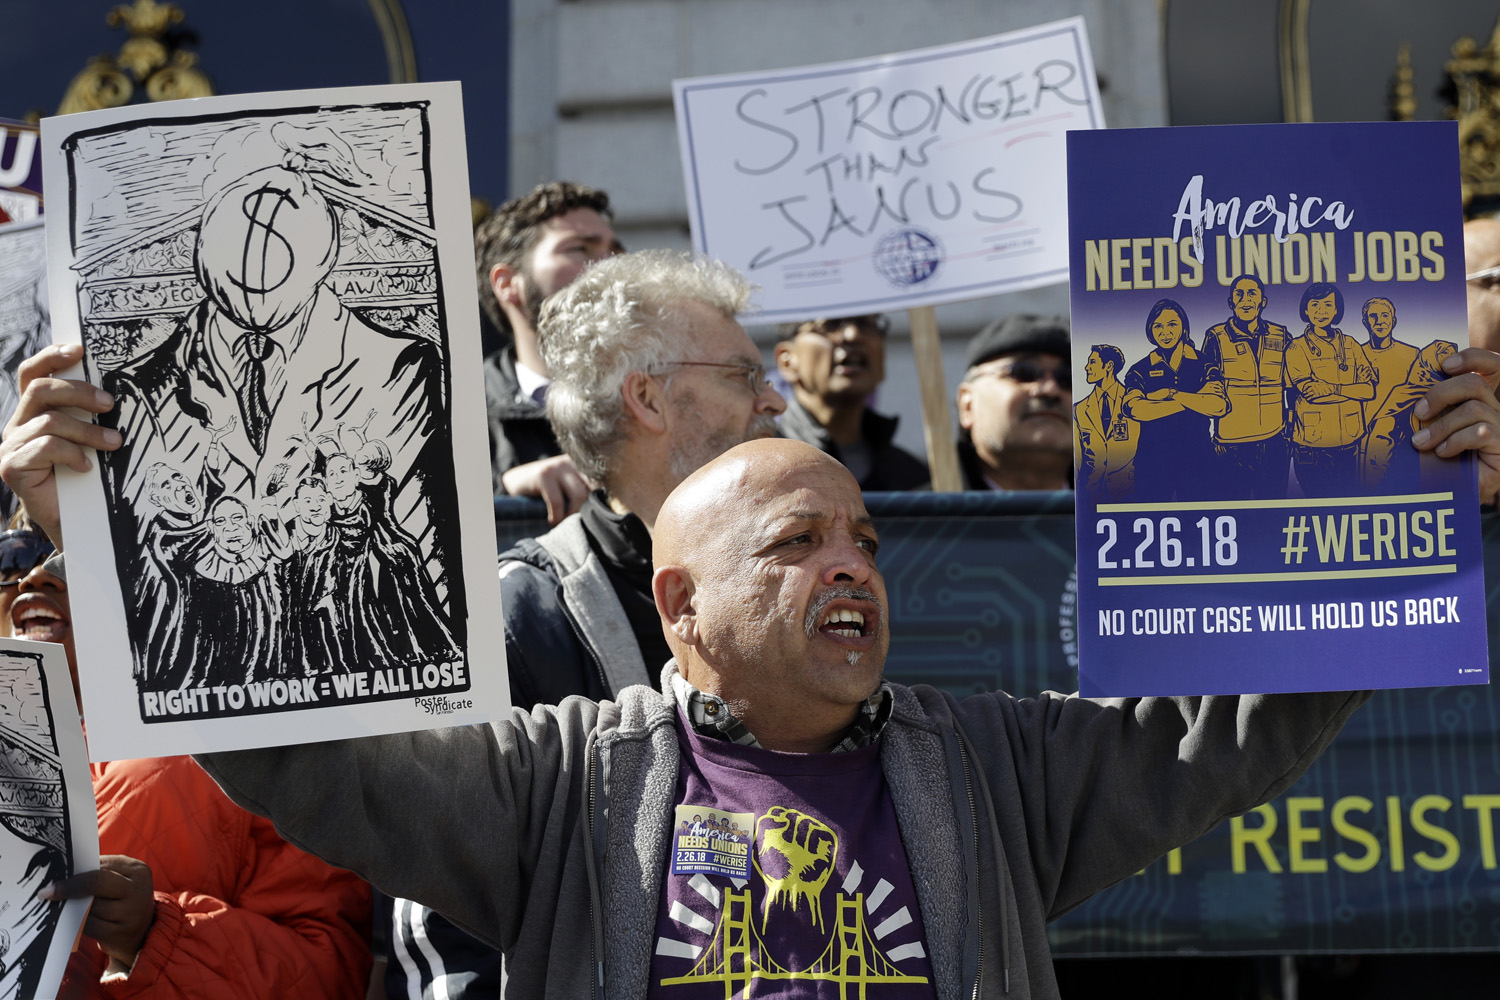 """A demonstrator holds pro-union signs during a demonstration involving various labor union groups Monday, Feb. 26, 2018, in San Francisco. The Supreme Court is divided in a major organized labor case over """"fair share"""" fees that nonmembers pay to help cover the costs of contract negotiations. (AP Photo/Marcio Jose Sanchez)"""